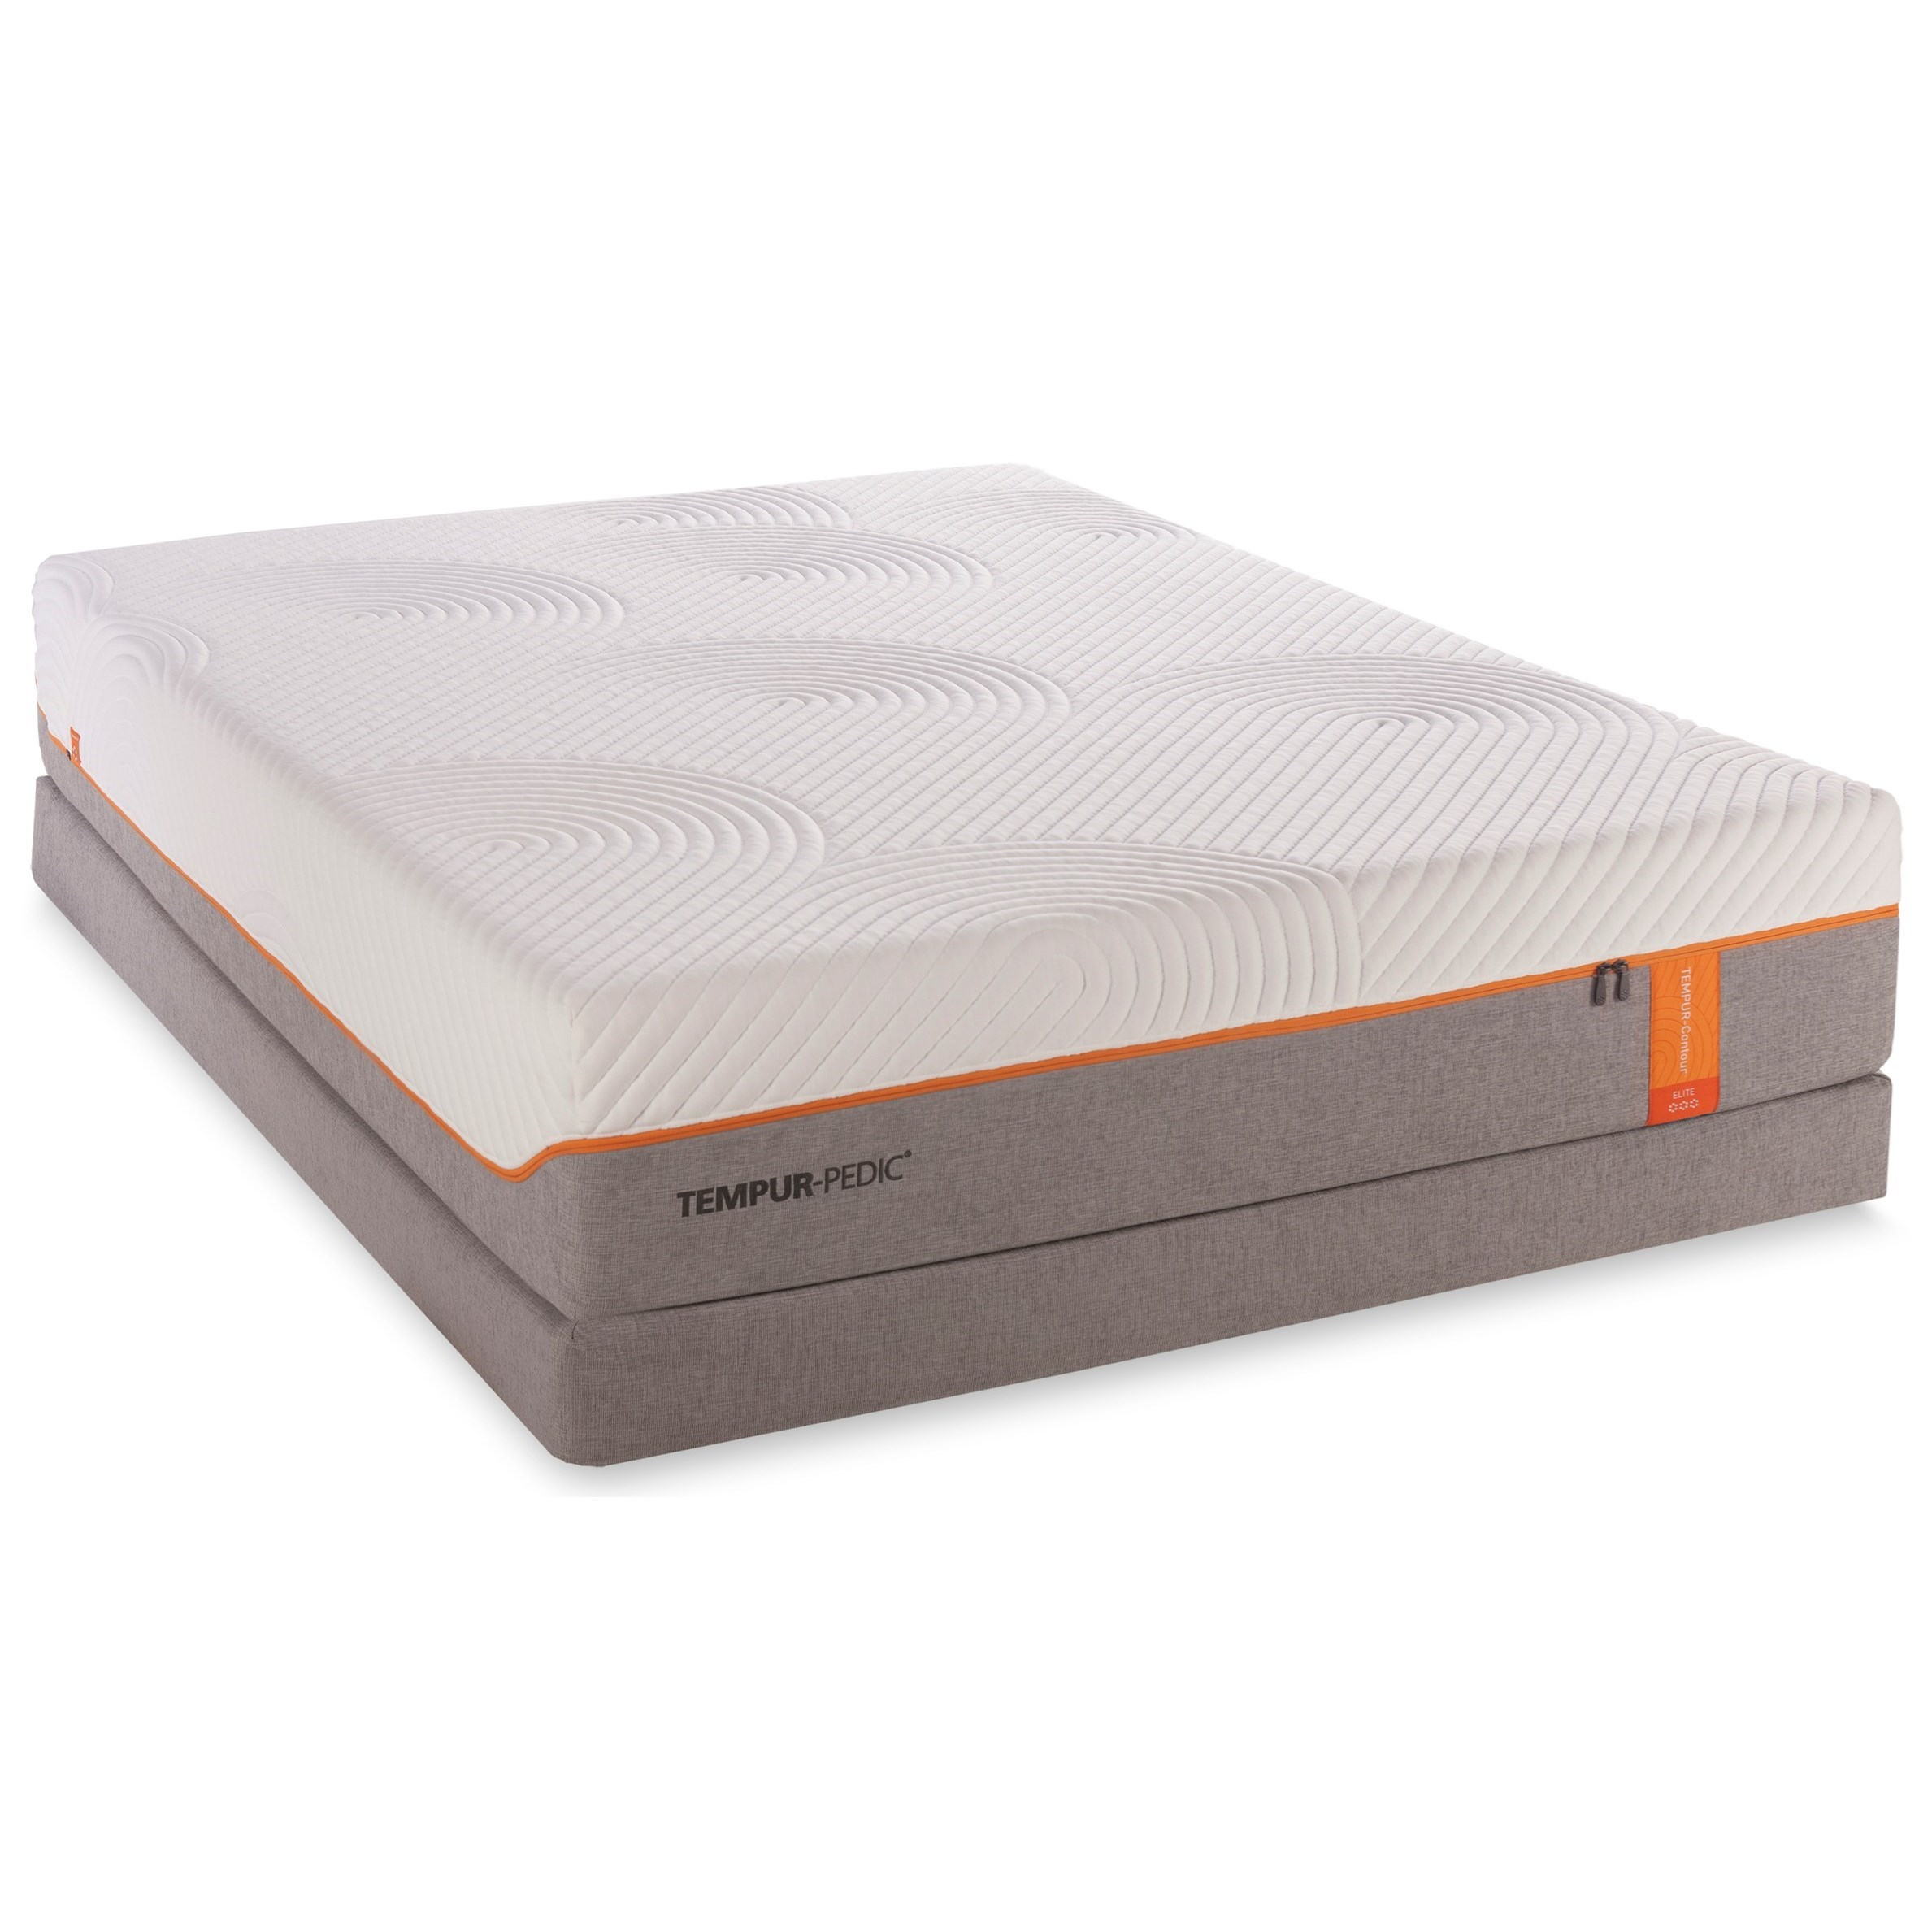 Tempur-Pedic® TEMPUR-Contour Elite Cal King Medium-Firm Mattress Set - Item Number: 10257180+2x20510190